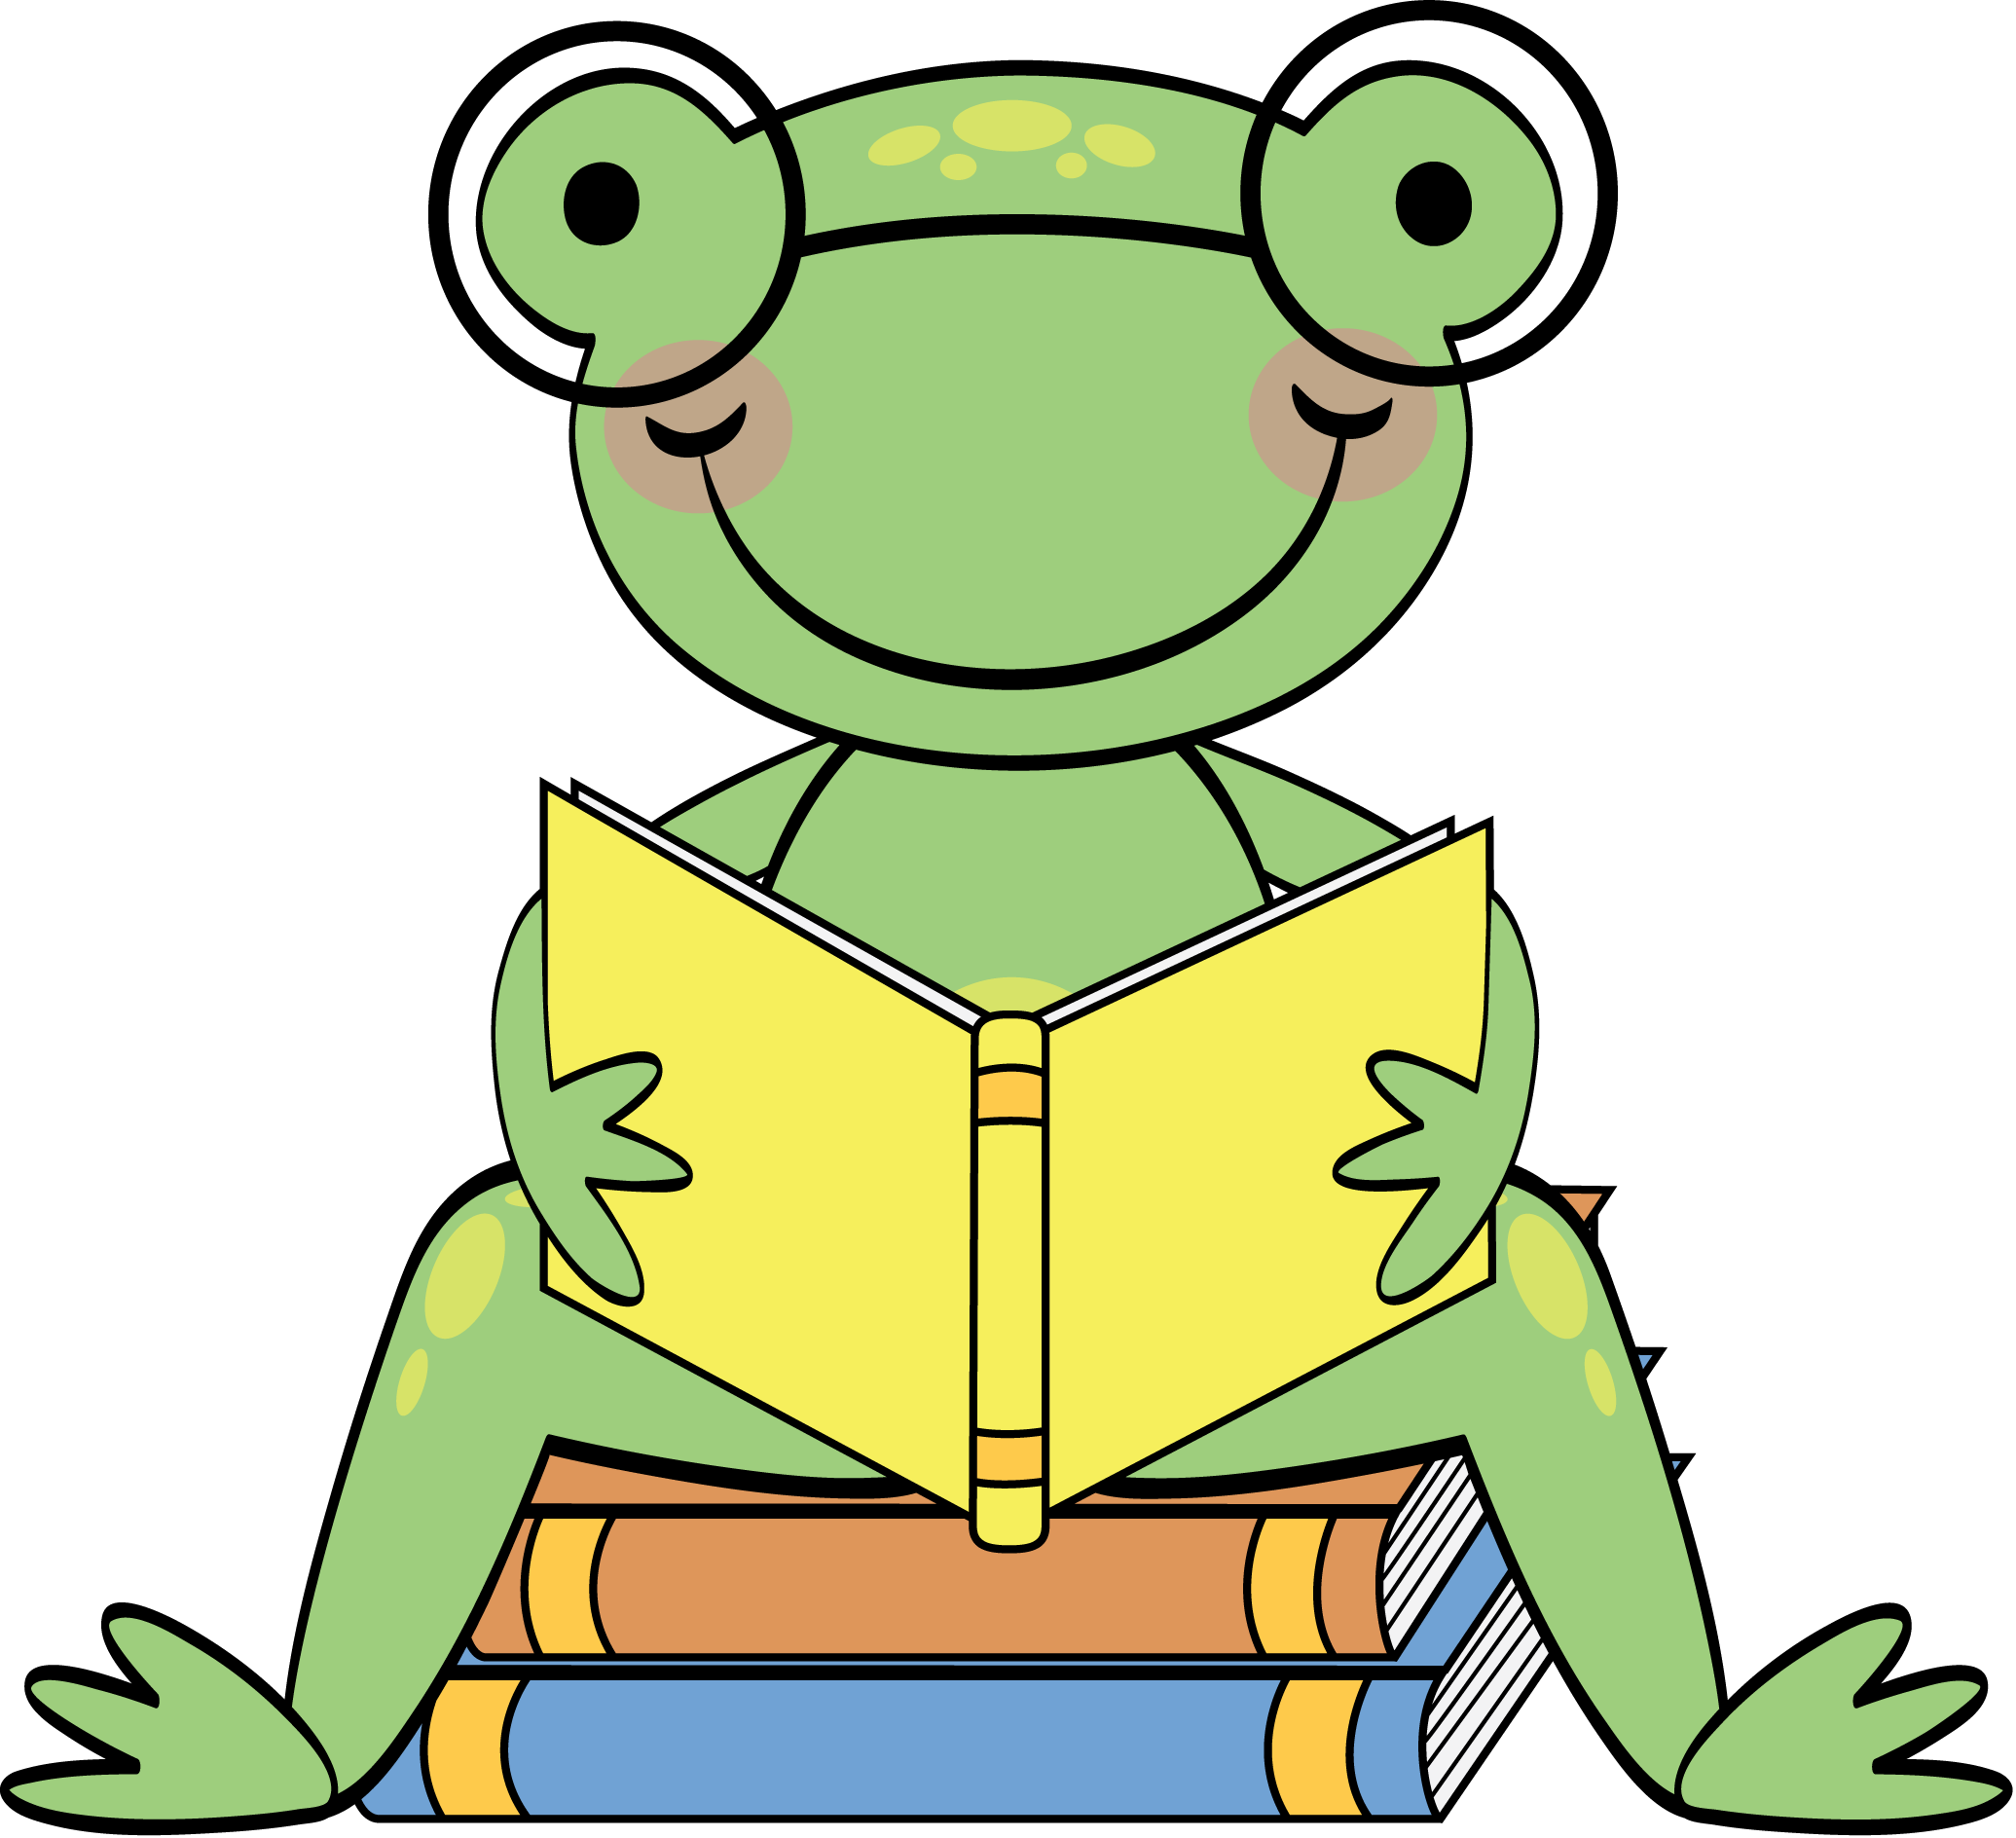 Frog crown clipart jpg black and white http://sunnydaypublishing.com/books/ | All about books and reading ... jpg black and white